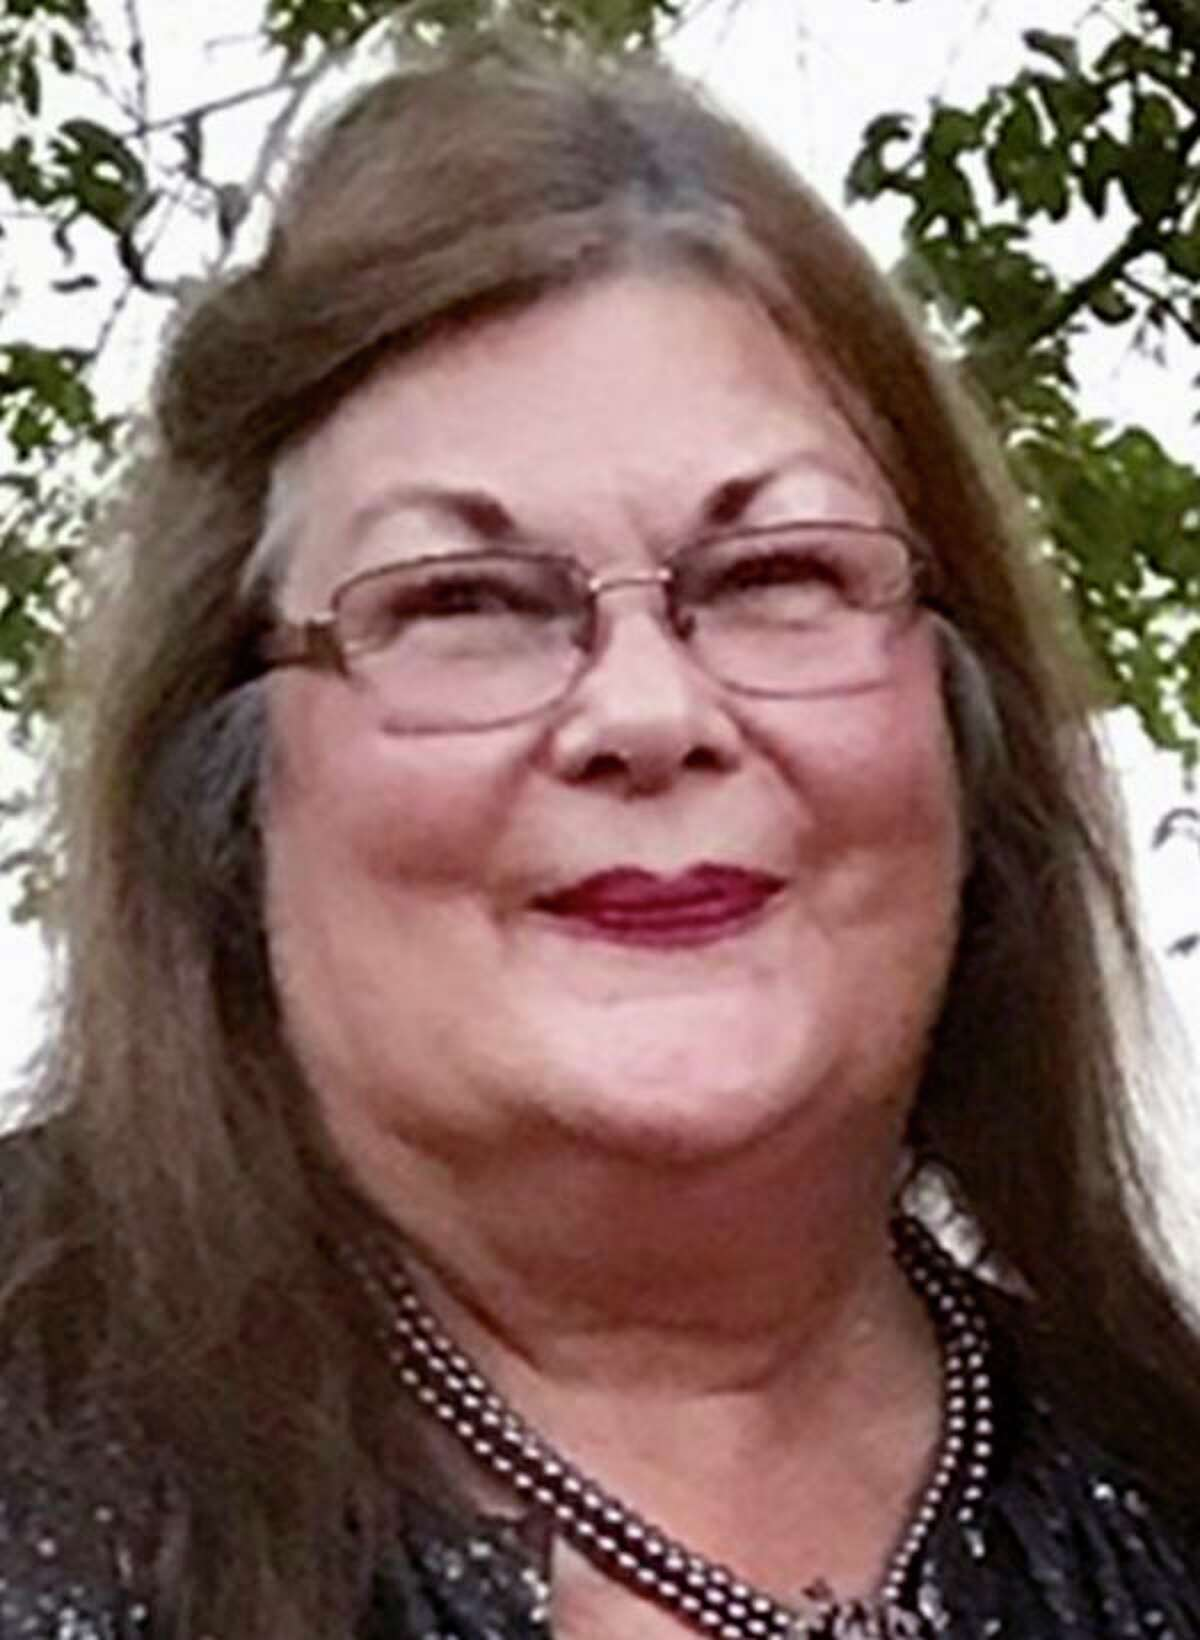 Carol Ann Cockrell Gulley, daughter of a political legacy and former San Antonio mayor Lila Cockrell, died Oct. 4 at 74 just over a month after her mother died. Gulley worked at the Magik Theatre downtown and led a collaboration with a local juvenile correction facility. Read more: Carol Ann Cockrell Gulley, daughter of former mayor, dies at 74